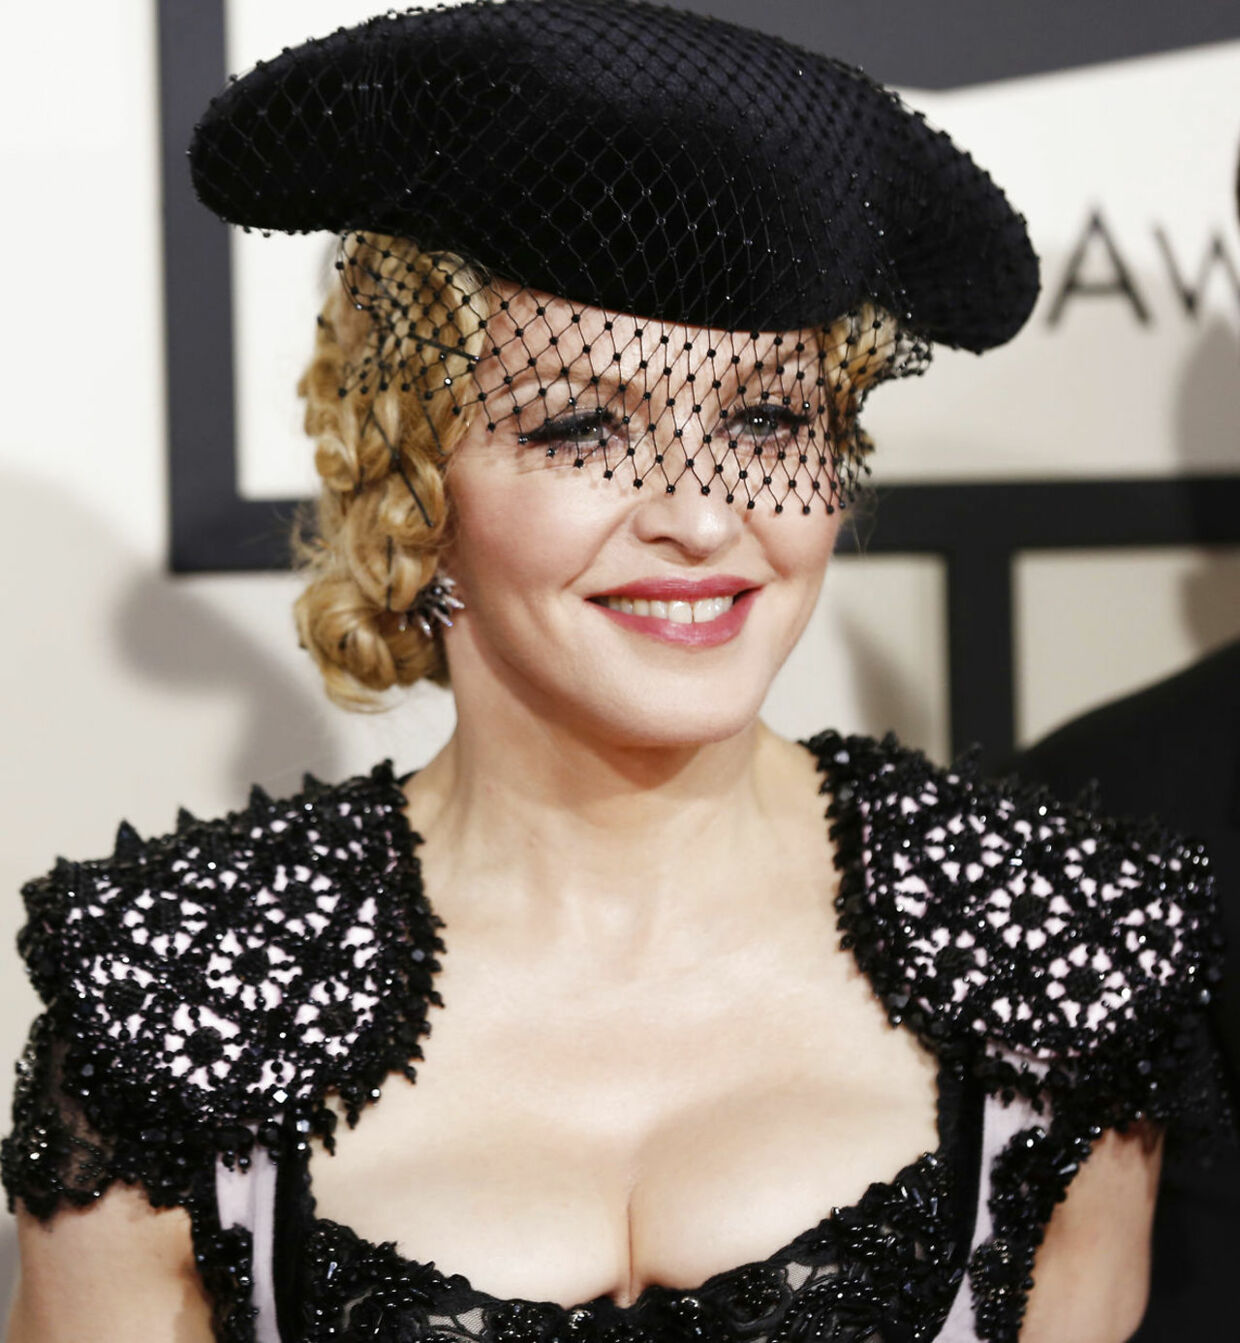 Singer Madonna arrives at the 57th annual Grammy Awards in Los Angeles, California February 8, 2015. REUTERS/Mario Anzuoni (UNITED STATES - TAGS: ENTERTAINMENT) (GRAMMYS-ARRIVALS)